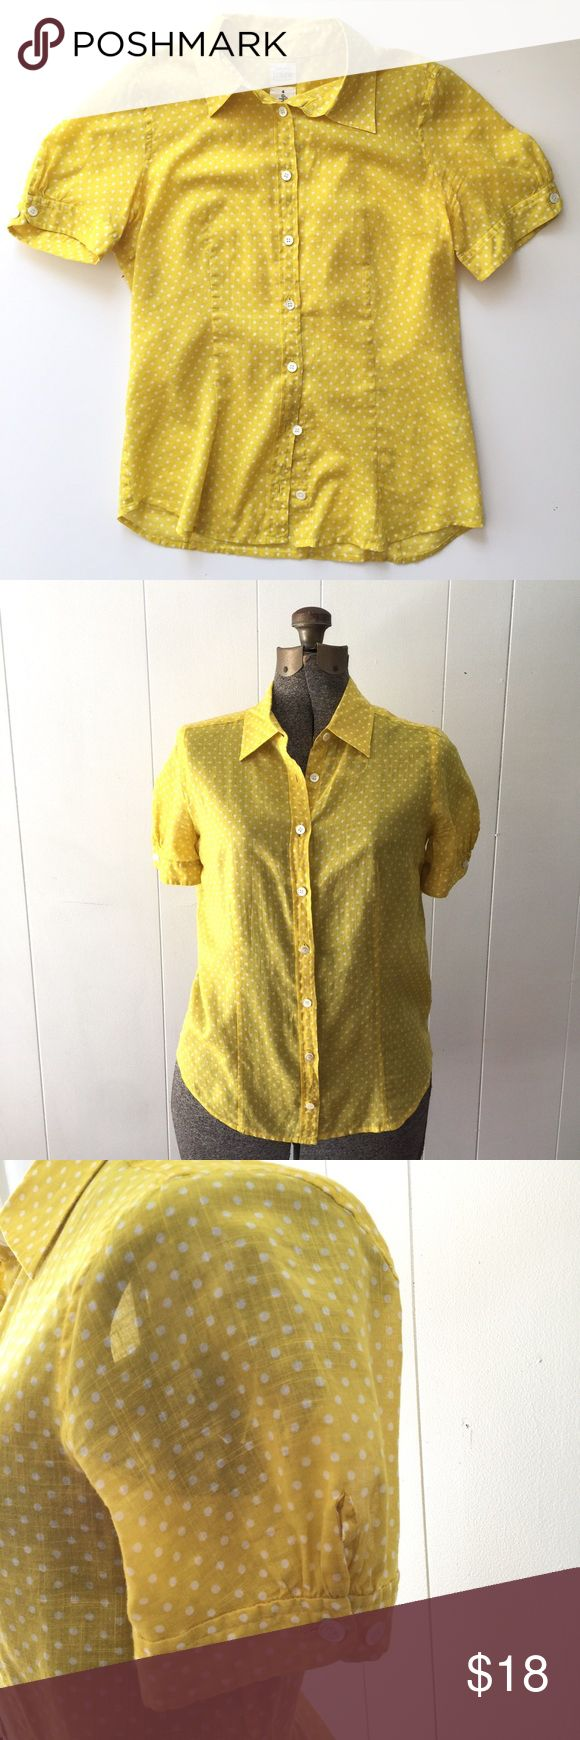 "J. Crew Yellow Polka Dot Washed Shirt // Size 4 Adorable J. Crew yellow polka dot short sleeve blouse. Very good condition. 90% cotton, 10% ramie. Size 4. 23 1/2"" shoulder to bottom hem. 16 1/2"" underarm to underarm. J. Crew Tops Blouses"